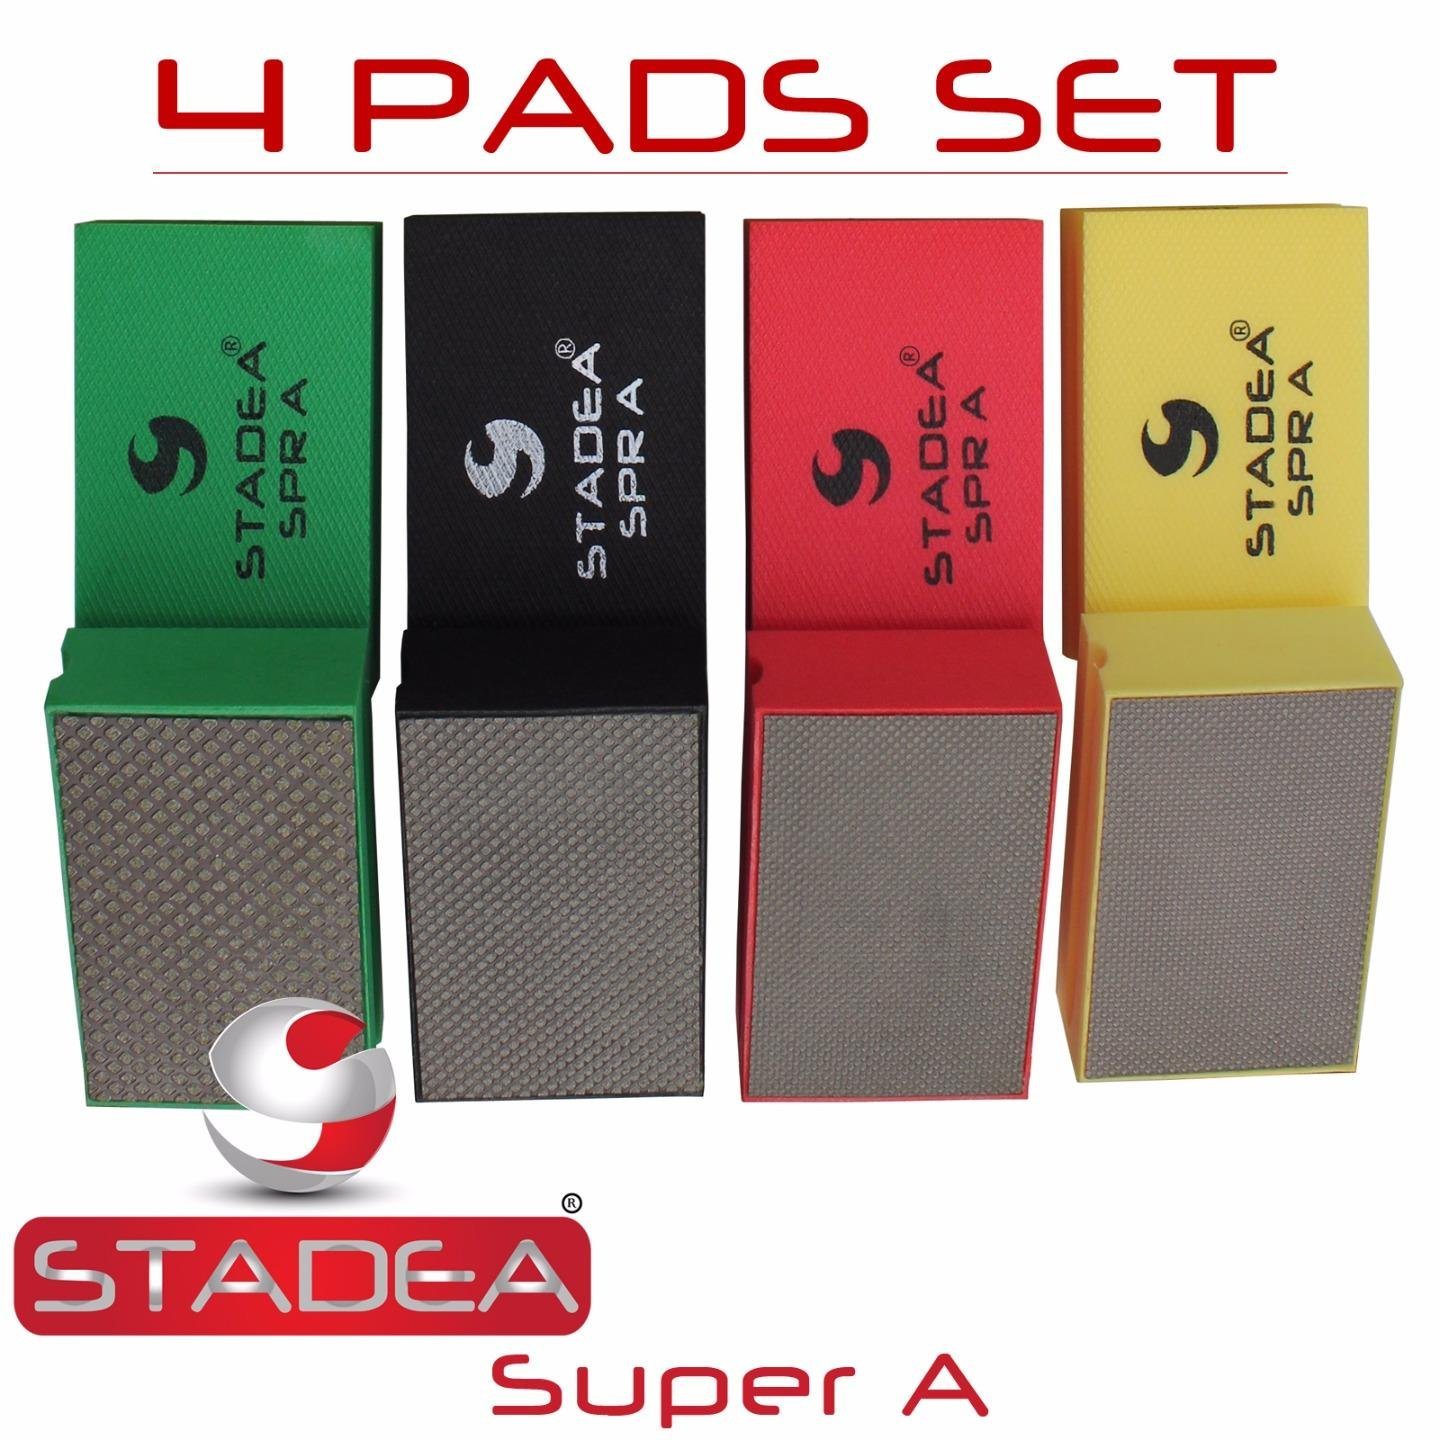 Stadea HPW107K Diamond Hand Polishing Pads - Glass Marble Concrete Stone Hand Polishing, 4 Pads Set by STADEA